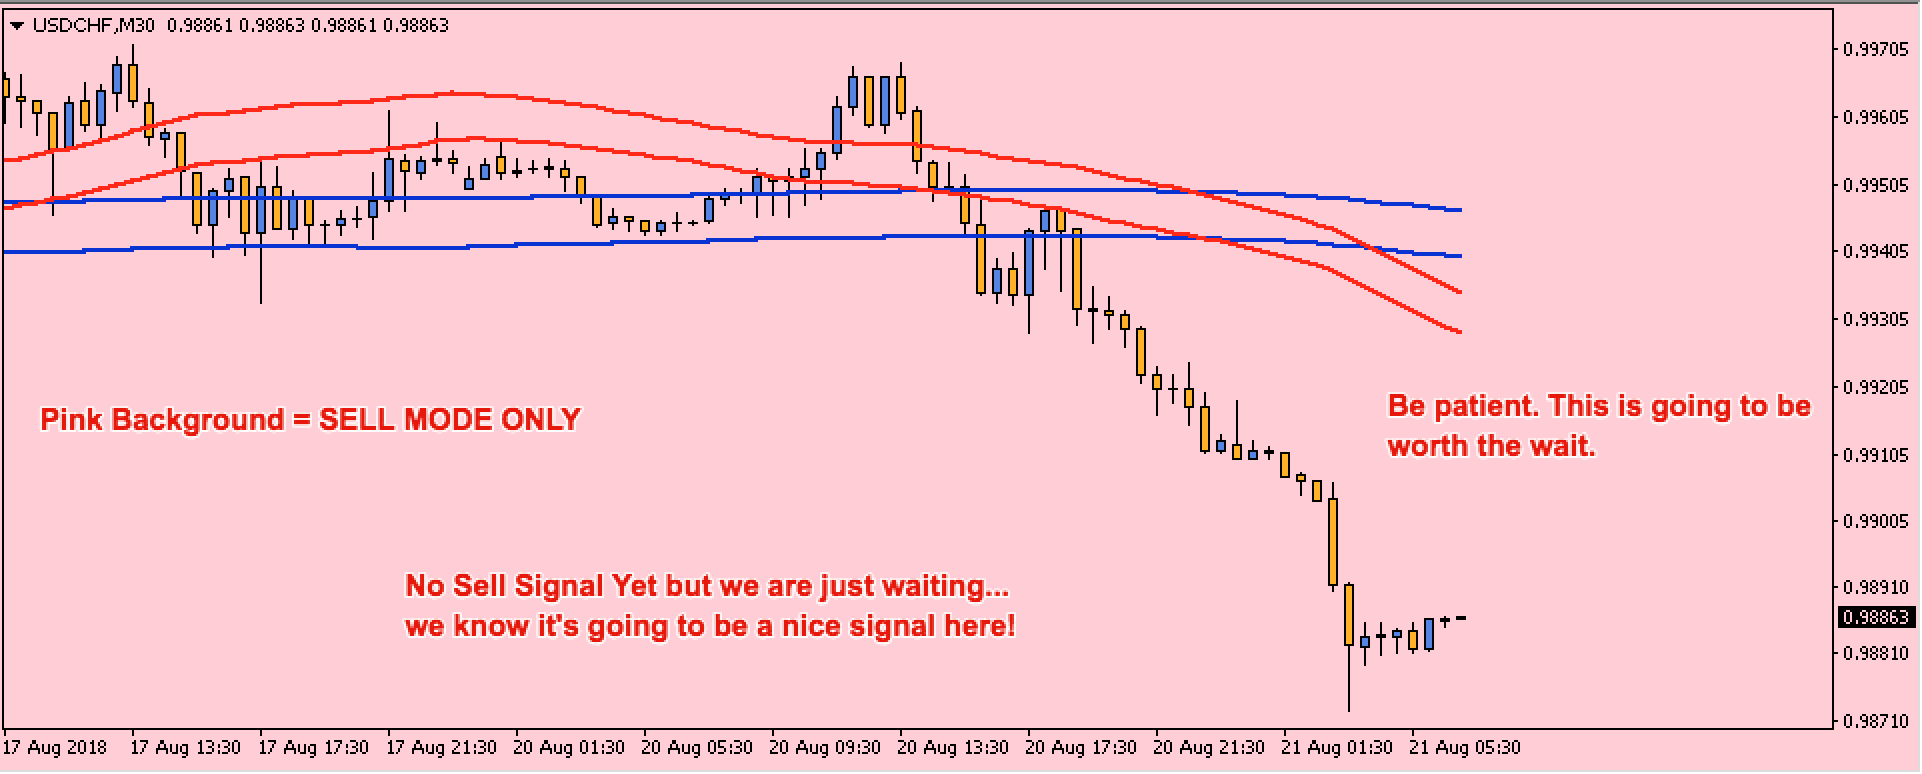 EasyPeasyPips - USDCHF - Waiting for the Signal to SELL!